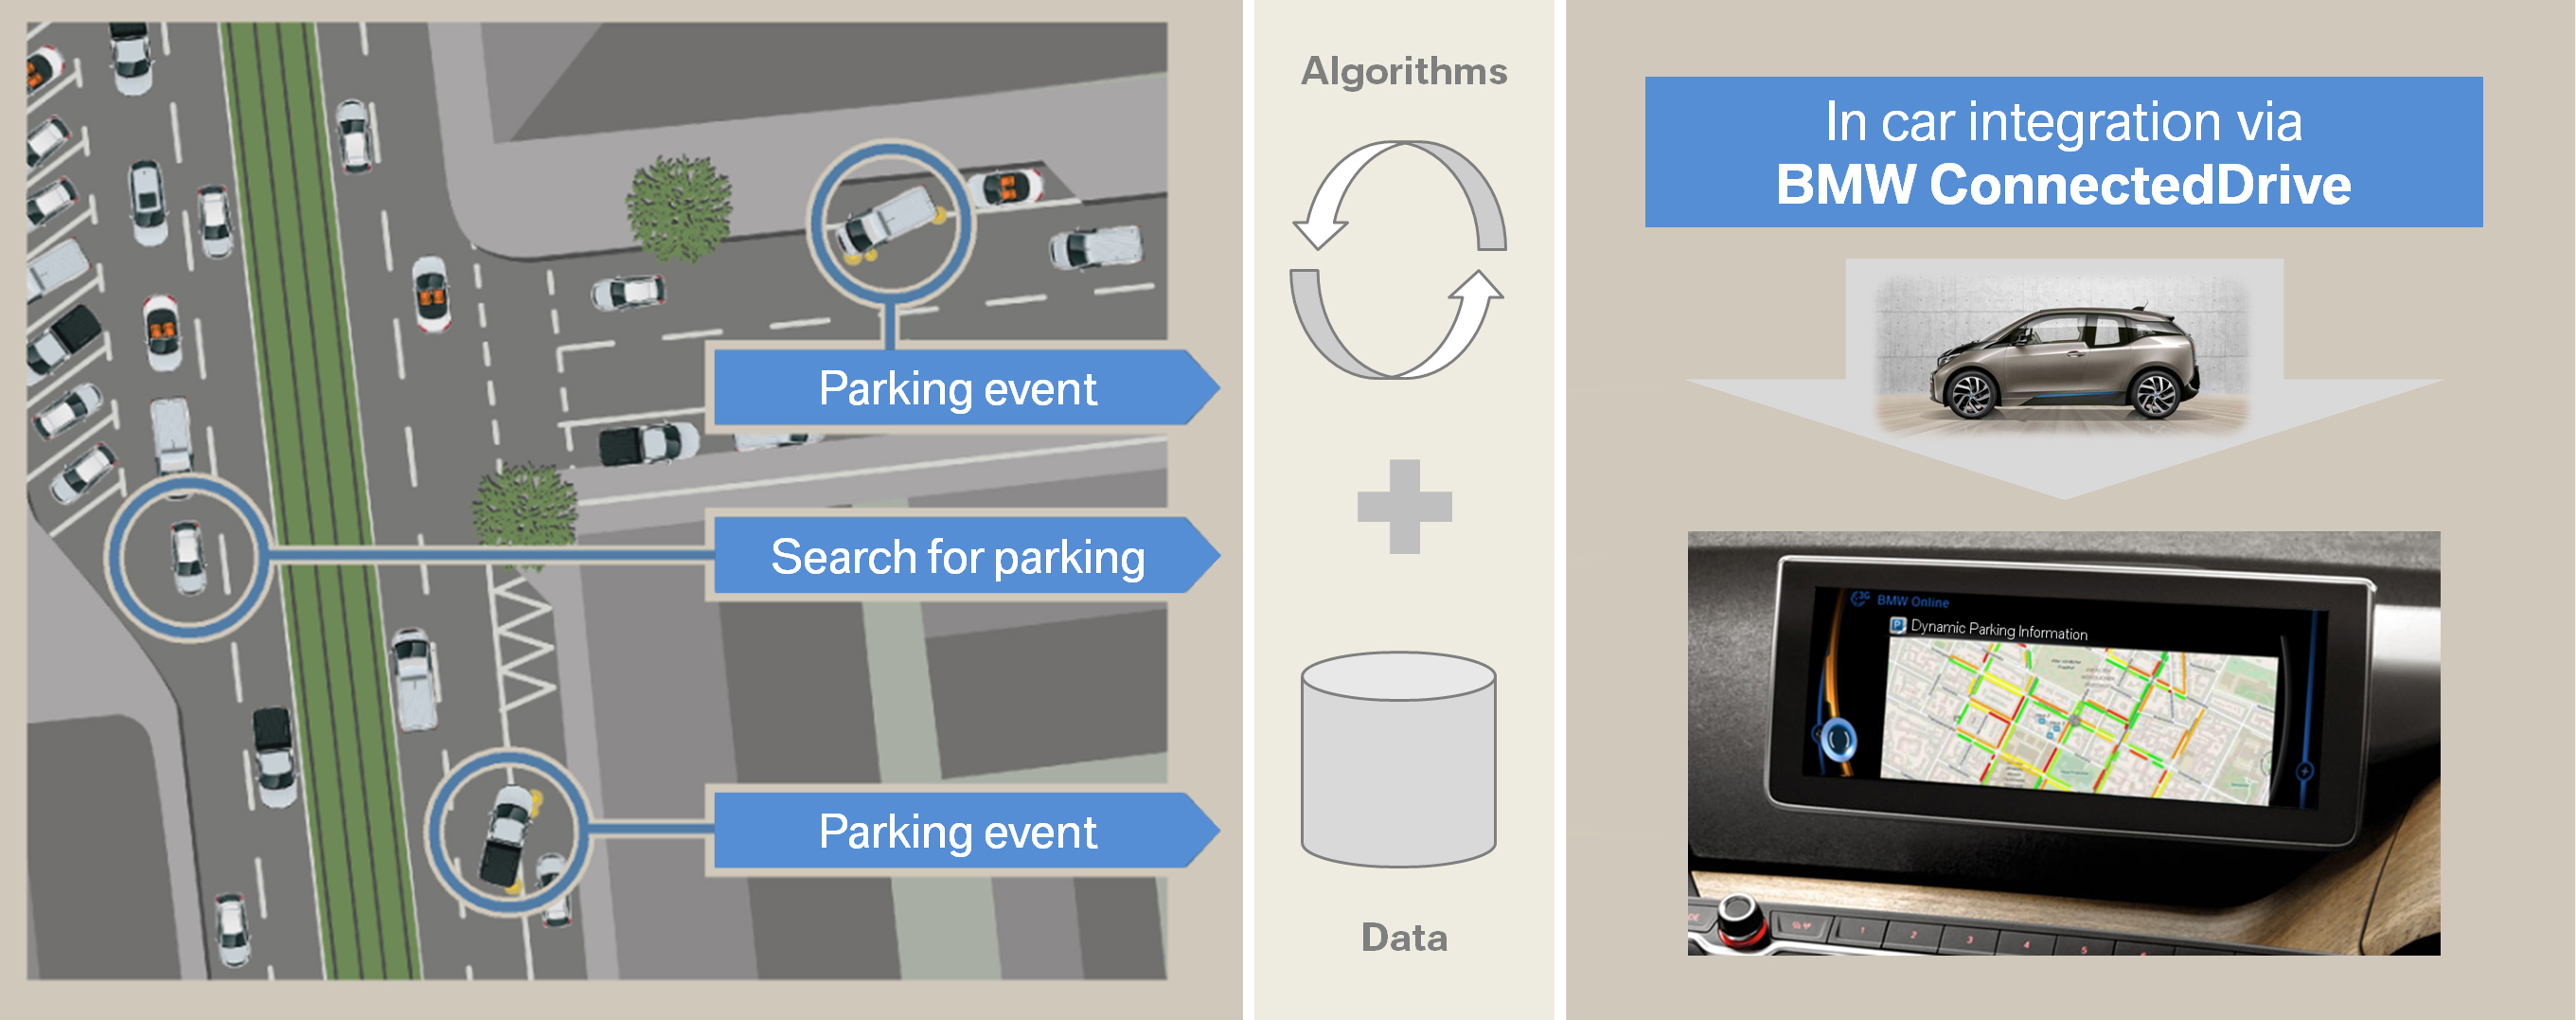 The predictive parking feature developed by Inrix is integrated in BMW ConnectedDrive, a technology packet of services and apps installed in the vehicle.